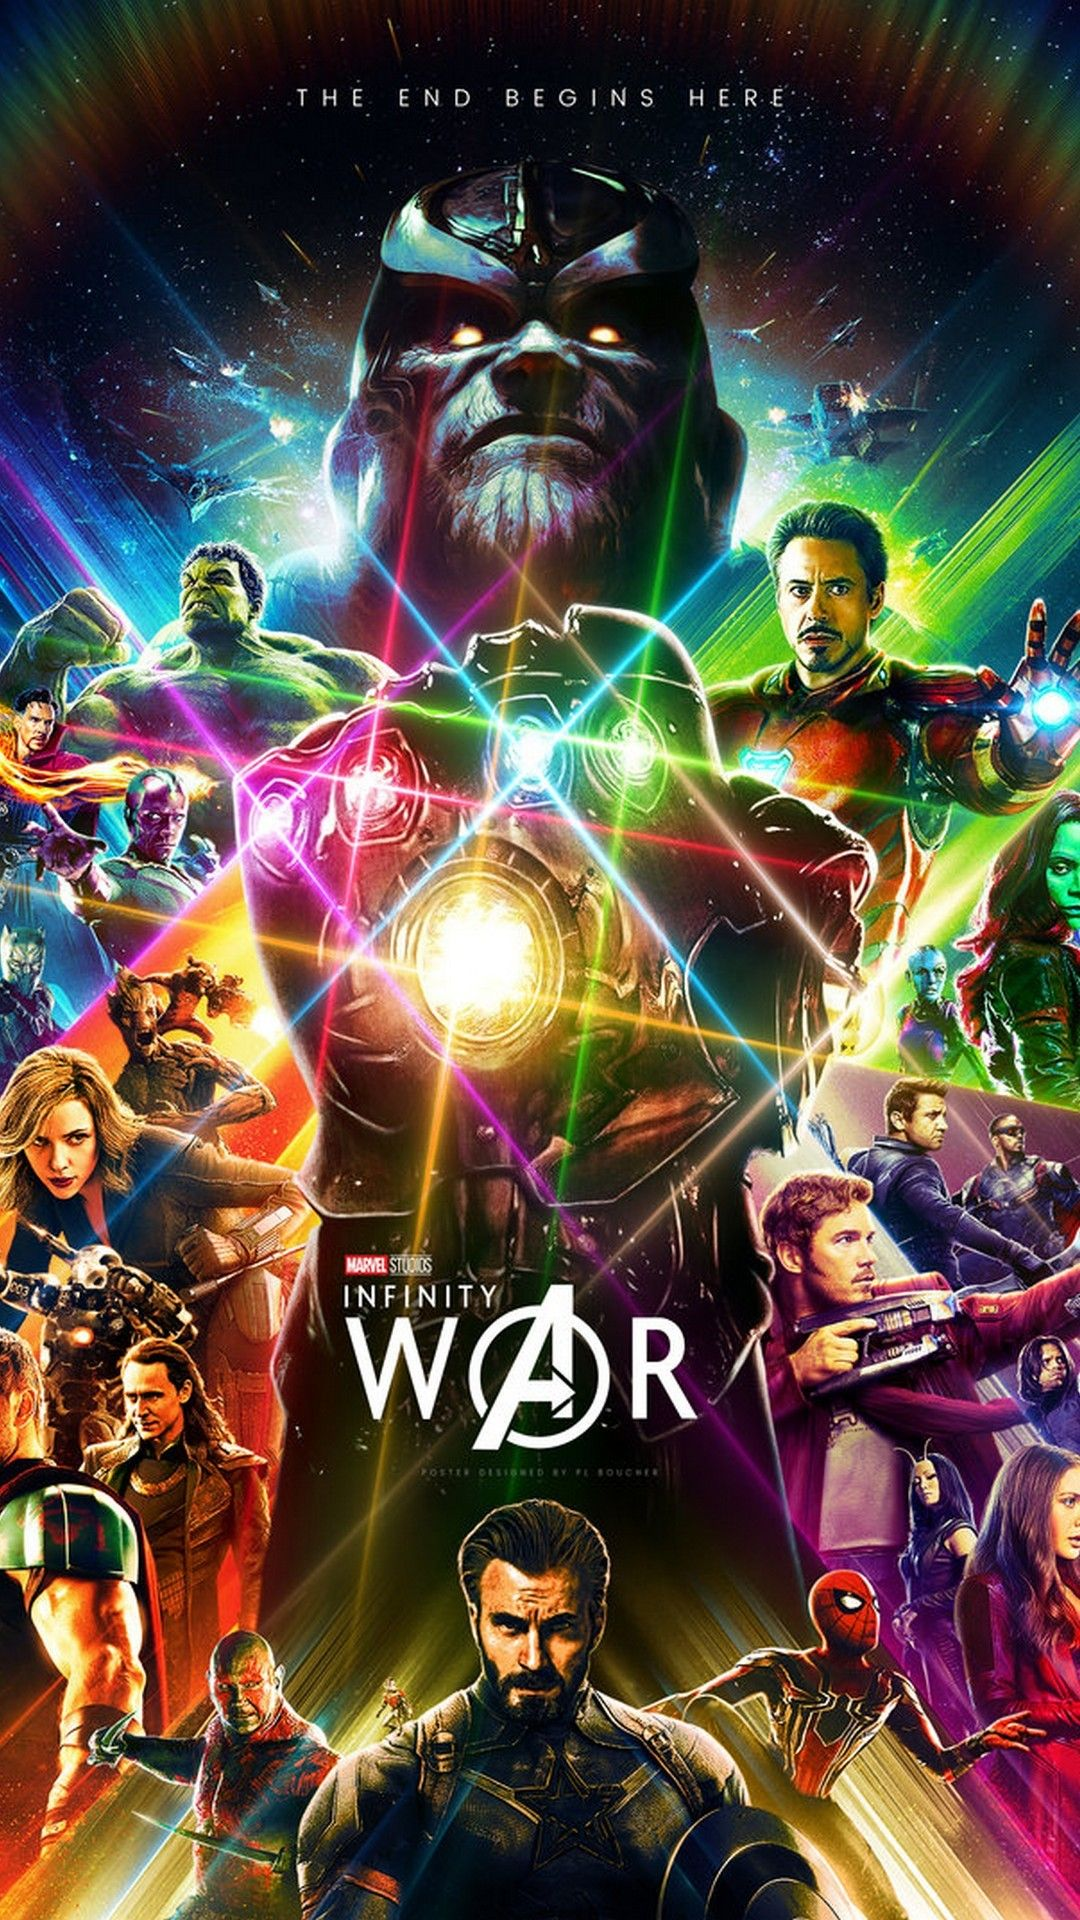 Avengers Infinity War Wallpaper Android - Best Android Wallpapers